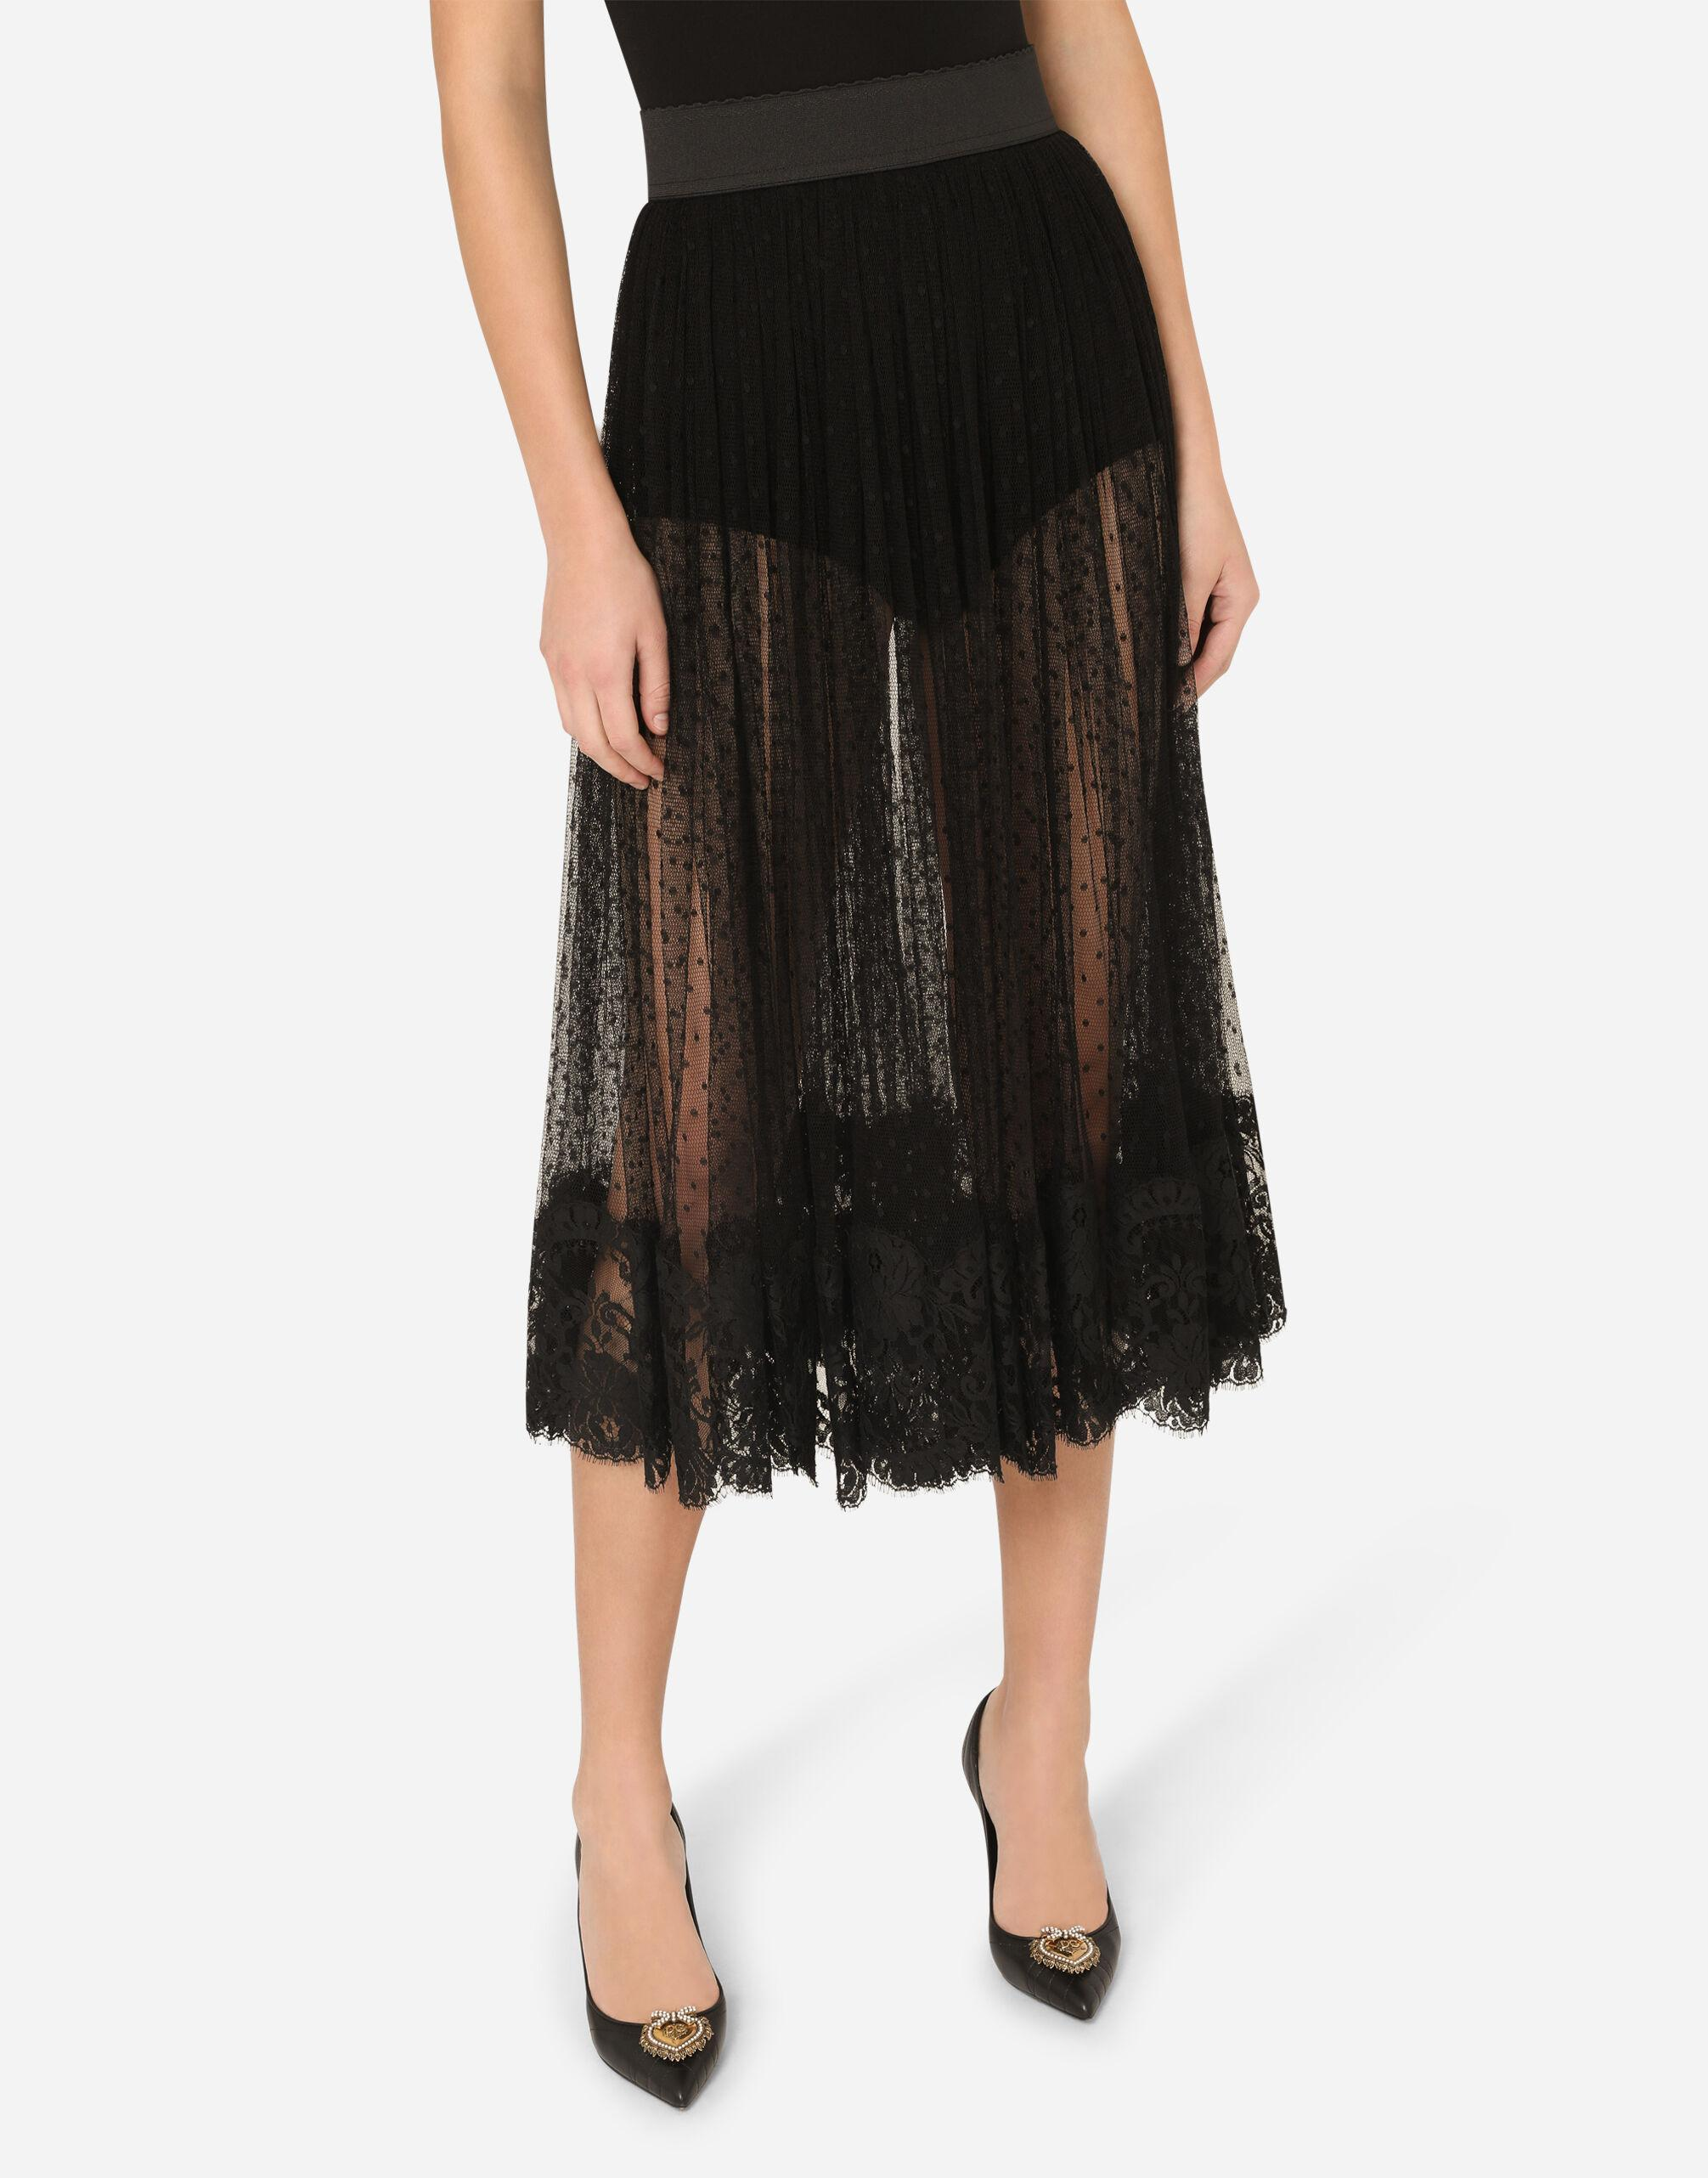 Pleated calf-length skirt in chantilly lace and plumetis 2